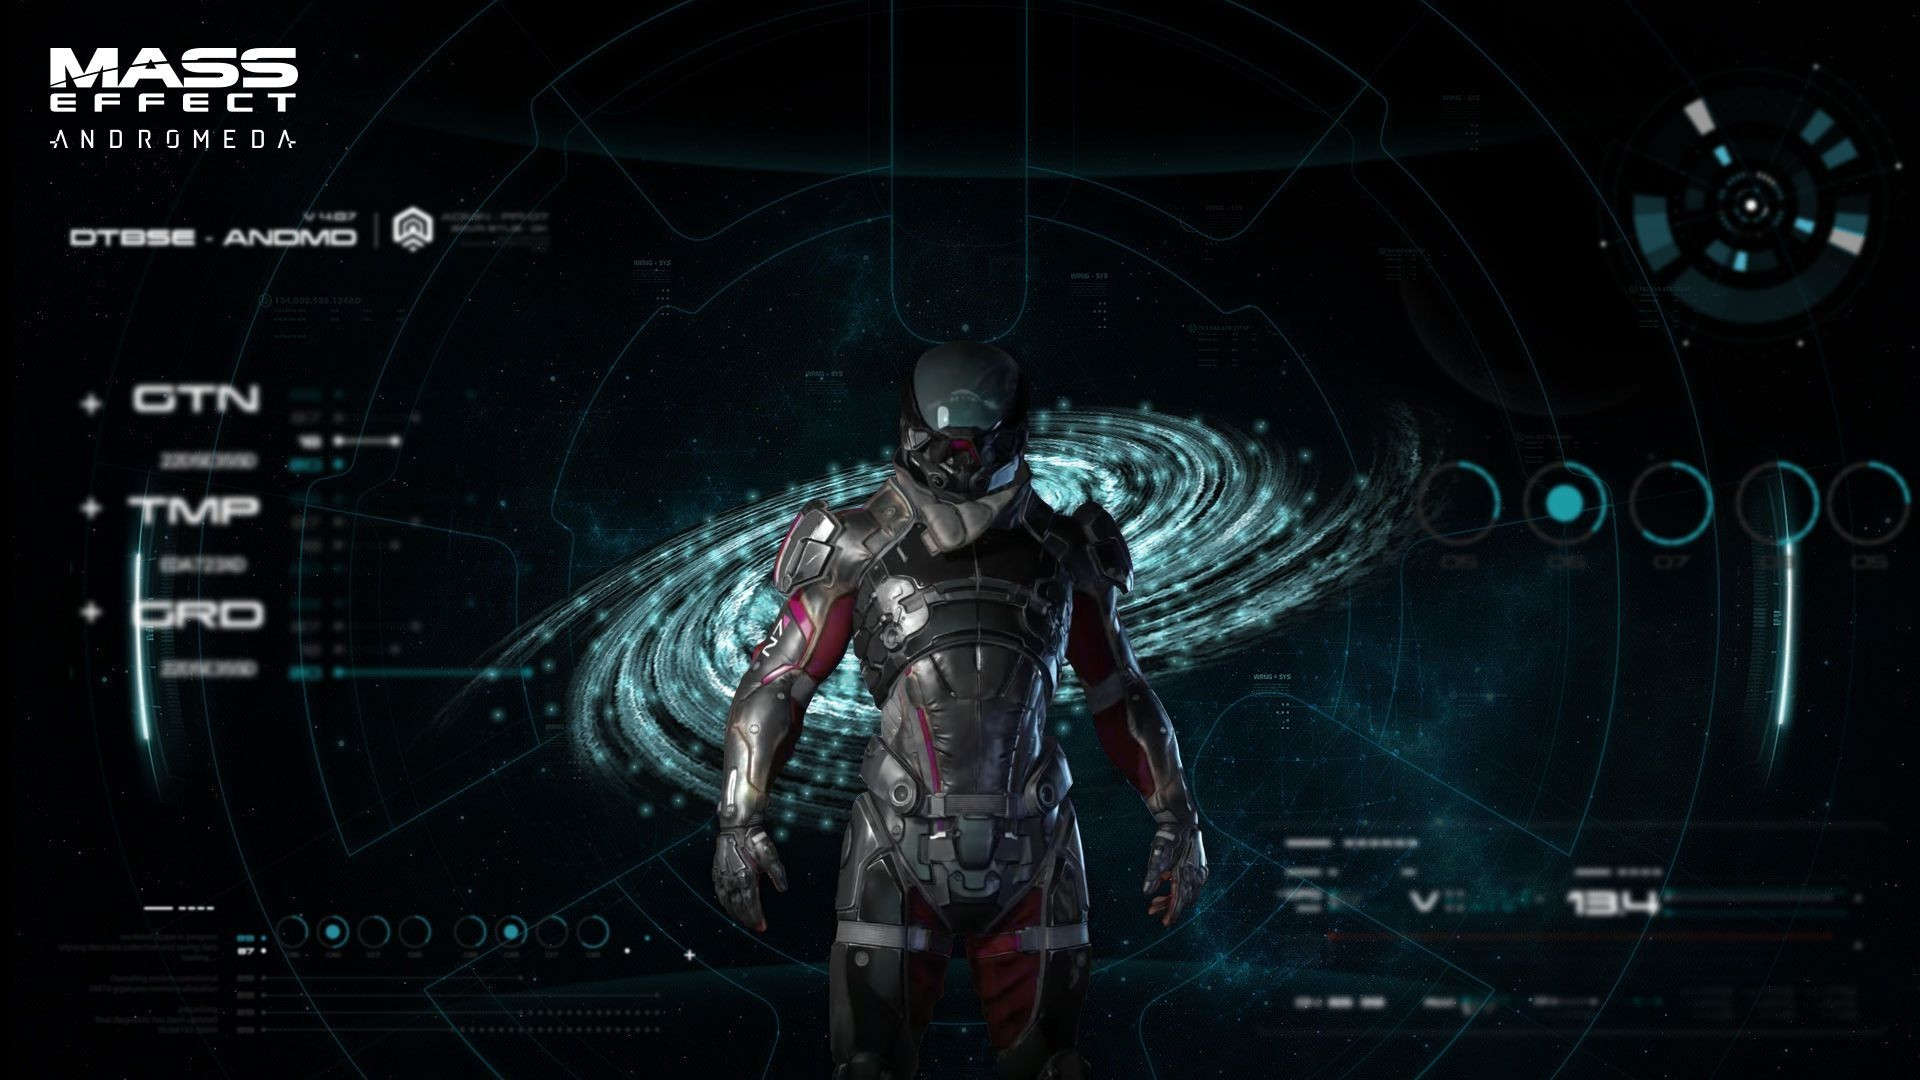 Res: 1920x1080, Mass Effect 4, Mass Effect Andromeda, Game, Character wallpaper thumb